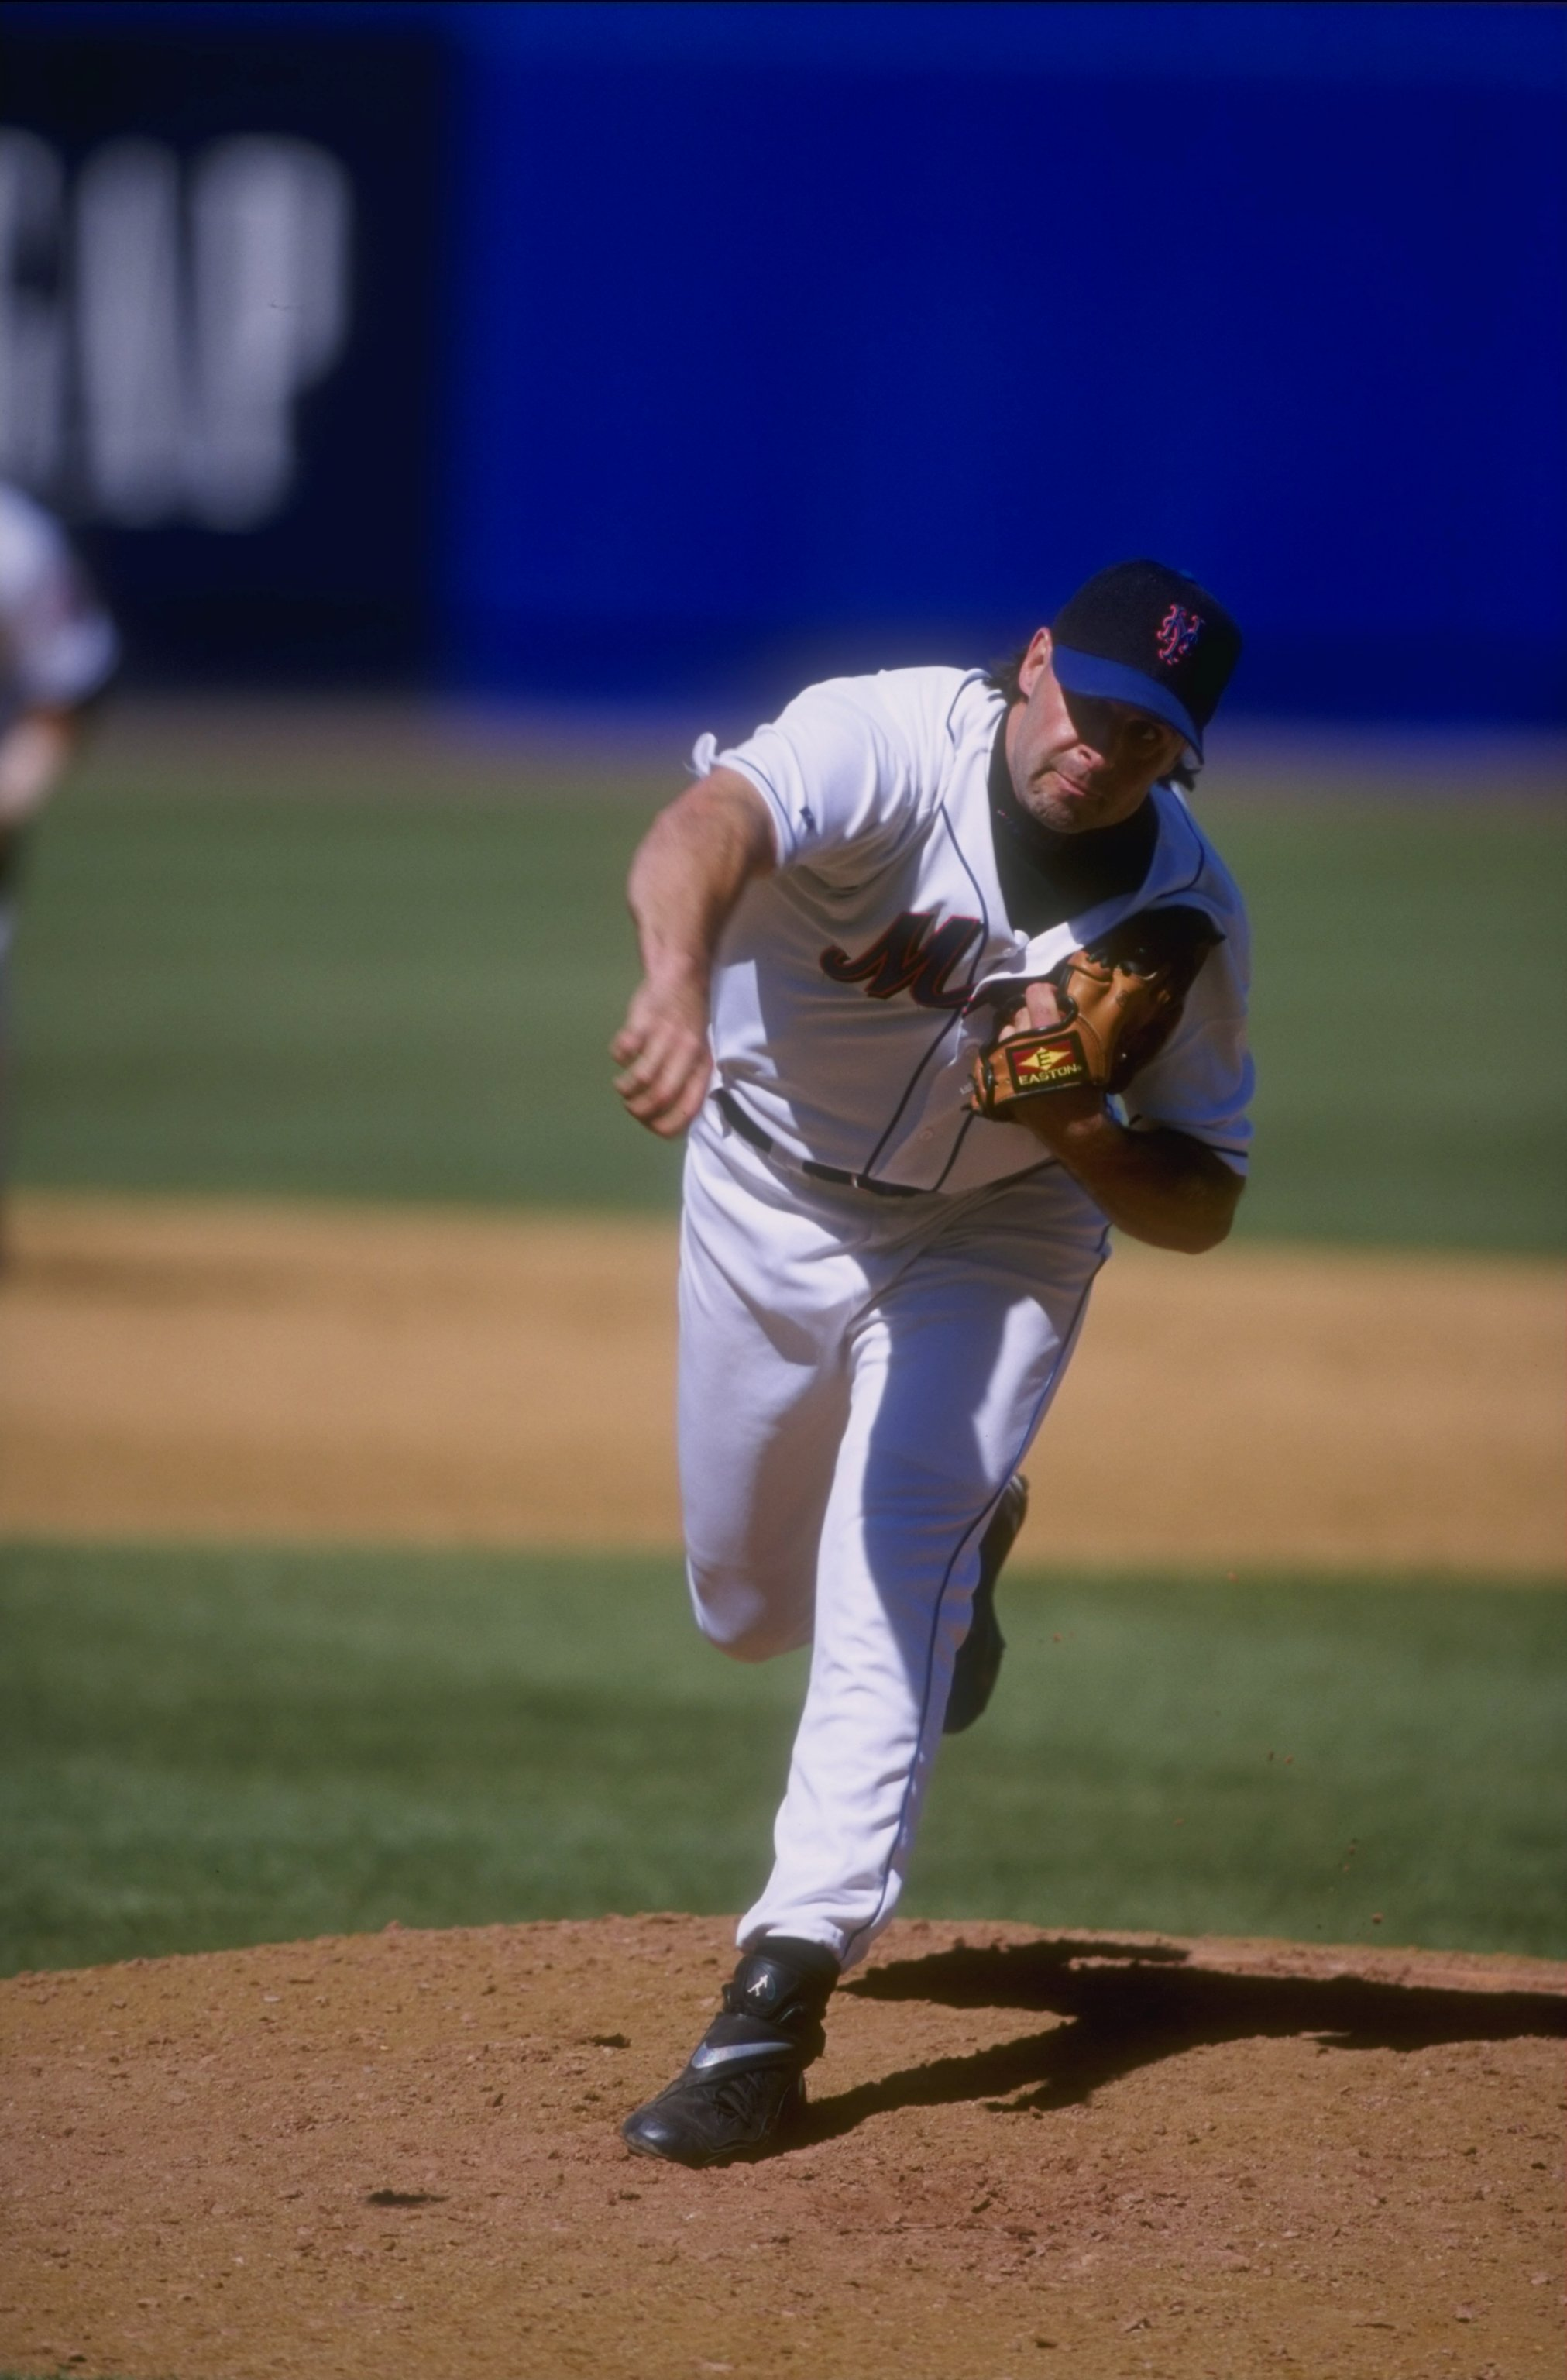 10 Jun 1998: Turk Wendell #99 of the New York Mets in action during a game against the Tampa Bay Devil Rays at Shea Stadium in Flushing, New York. The Mets defeated the Devil Rays 3-2.